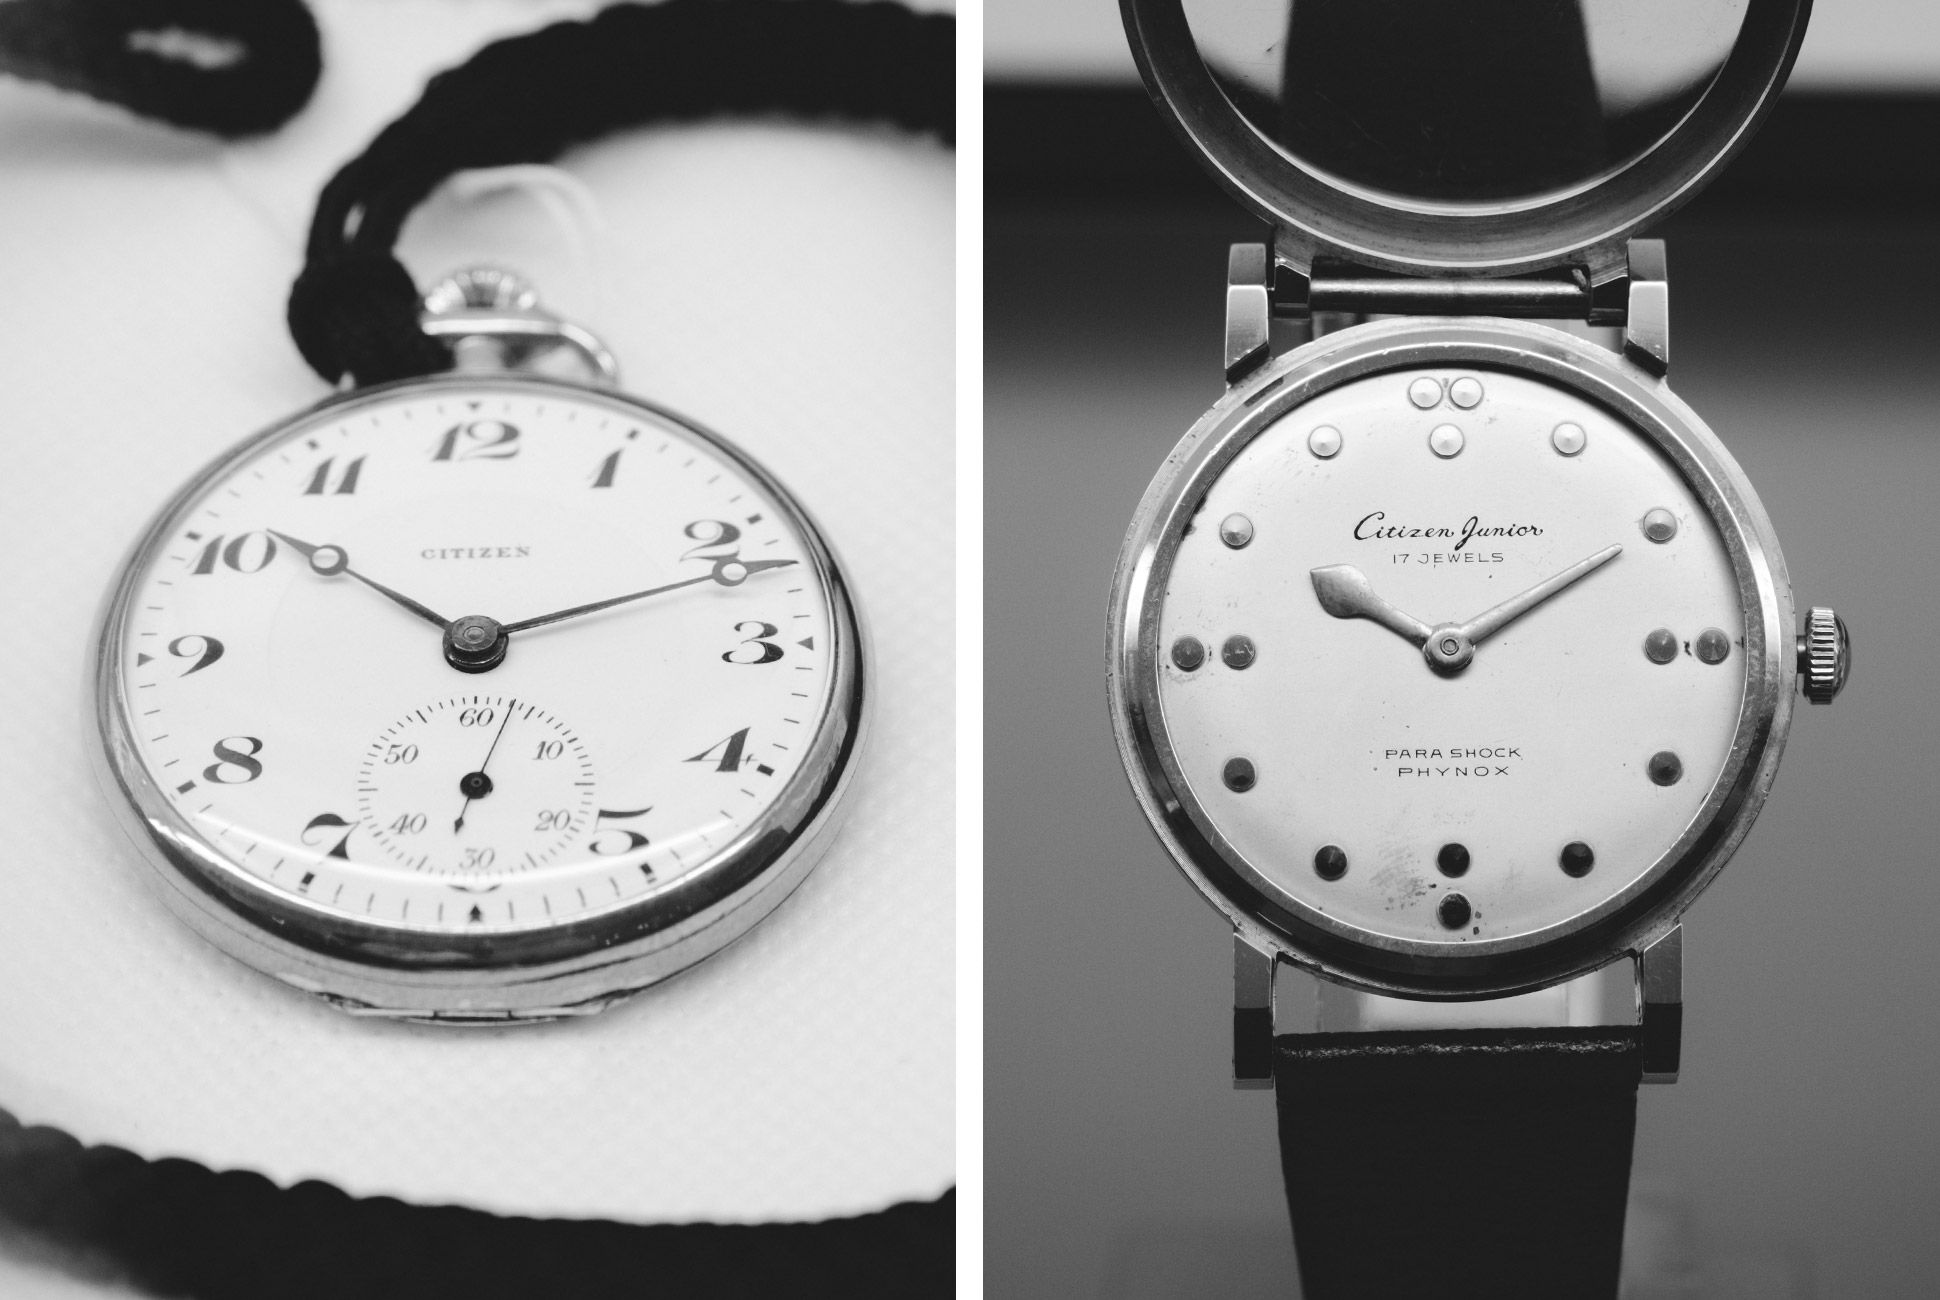 Left: A Citizen Pocketwatch from 1924; Right: 1960s Citizen Home Para Shock Phynox.